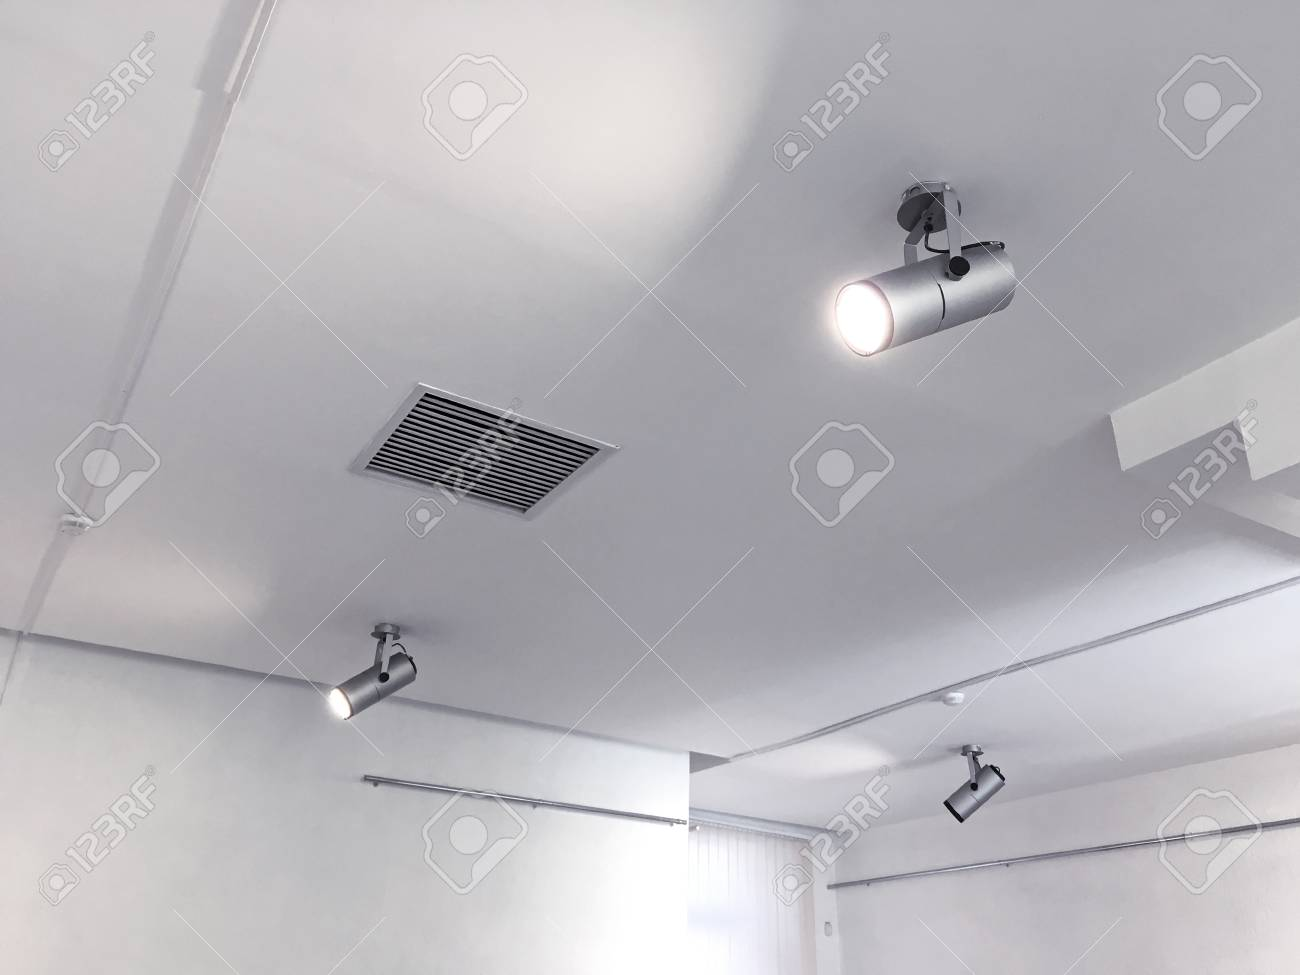 Exhibition Ceiling Light Fixtures Bright Halogen Spotlights Stock Photo Picture And Royalty Free Image Image 87173484